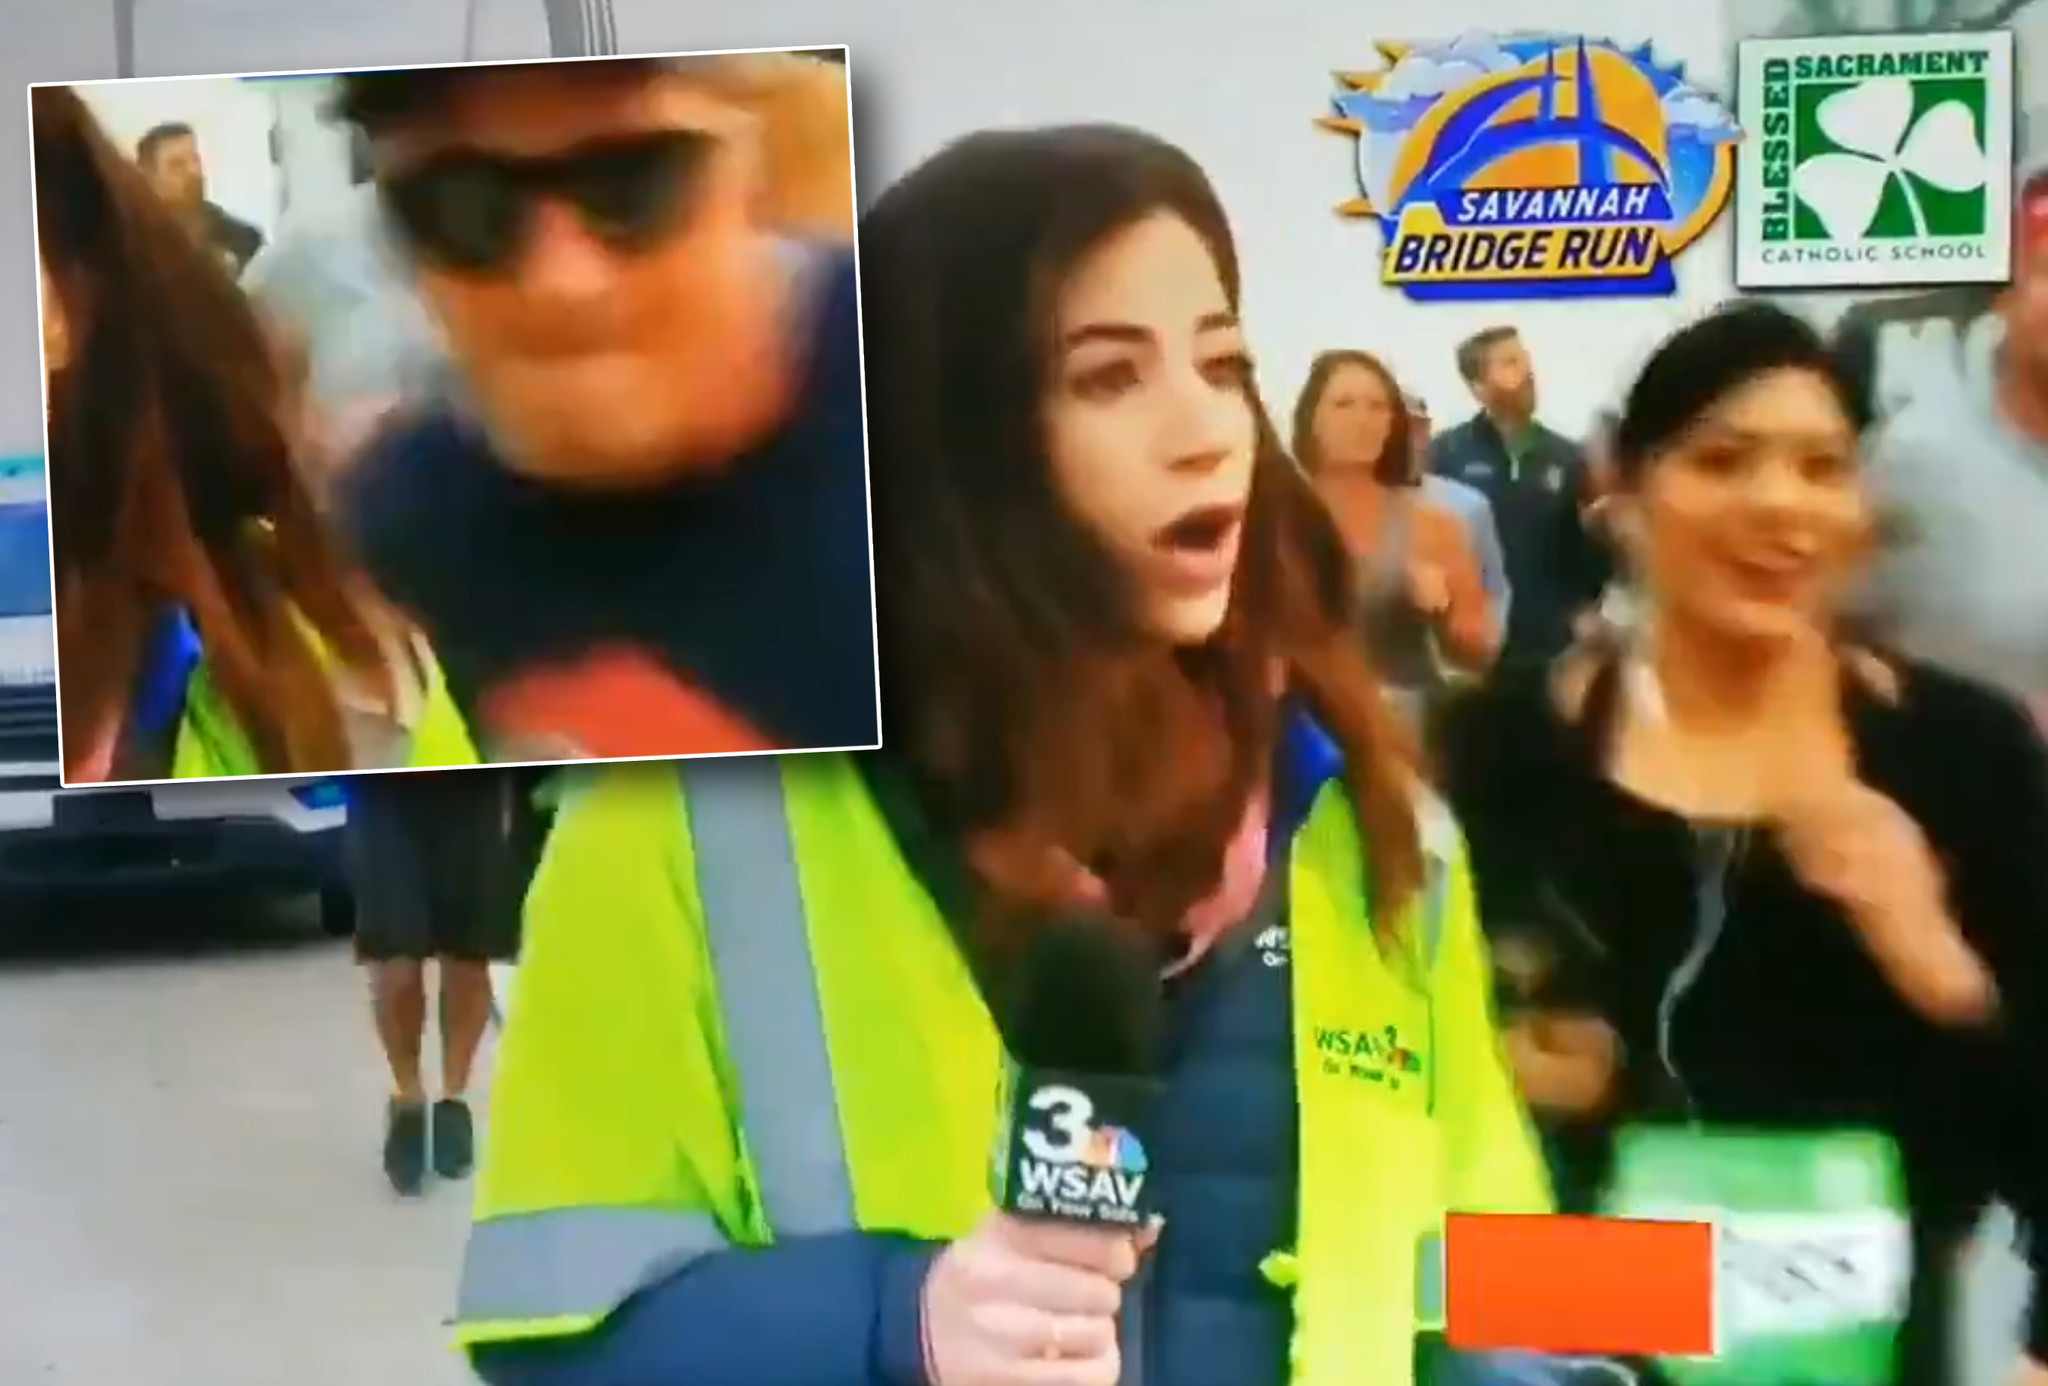 Man who groped reporter on live TV during road race says he's sorry